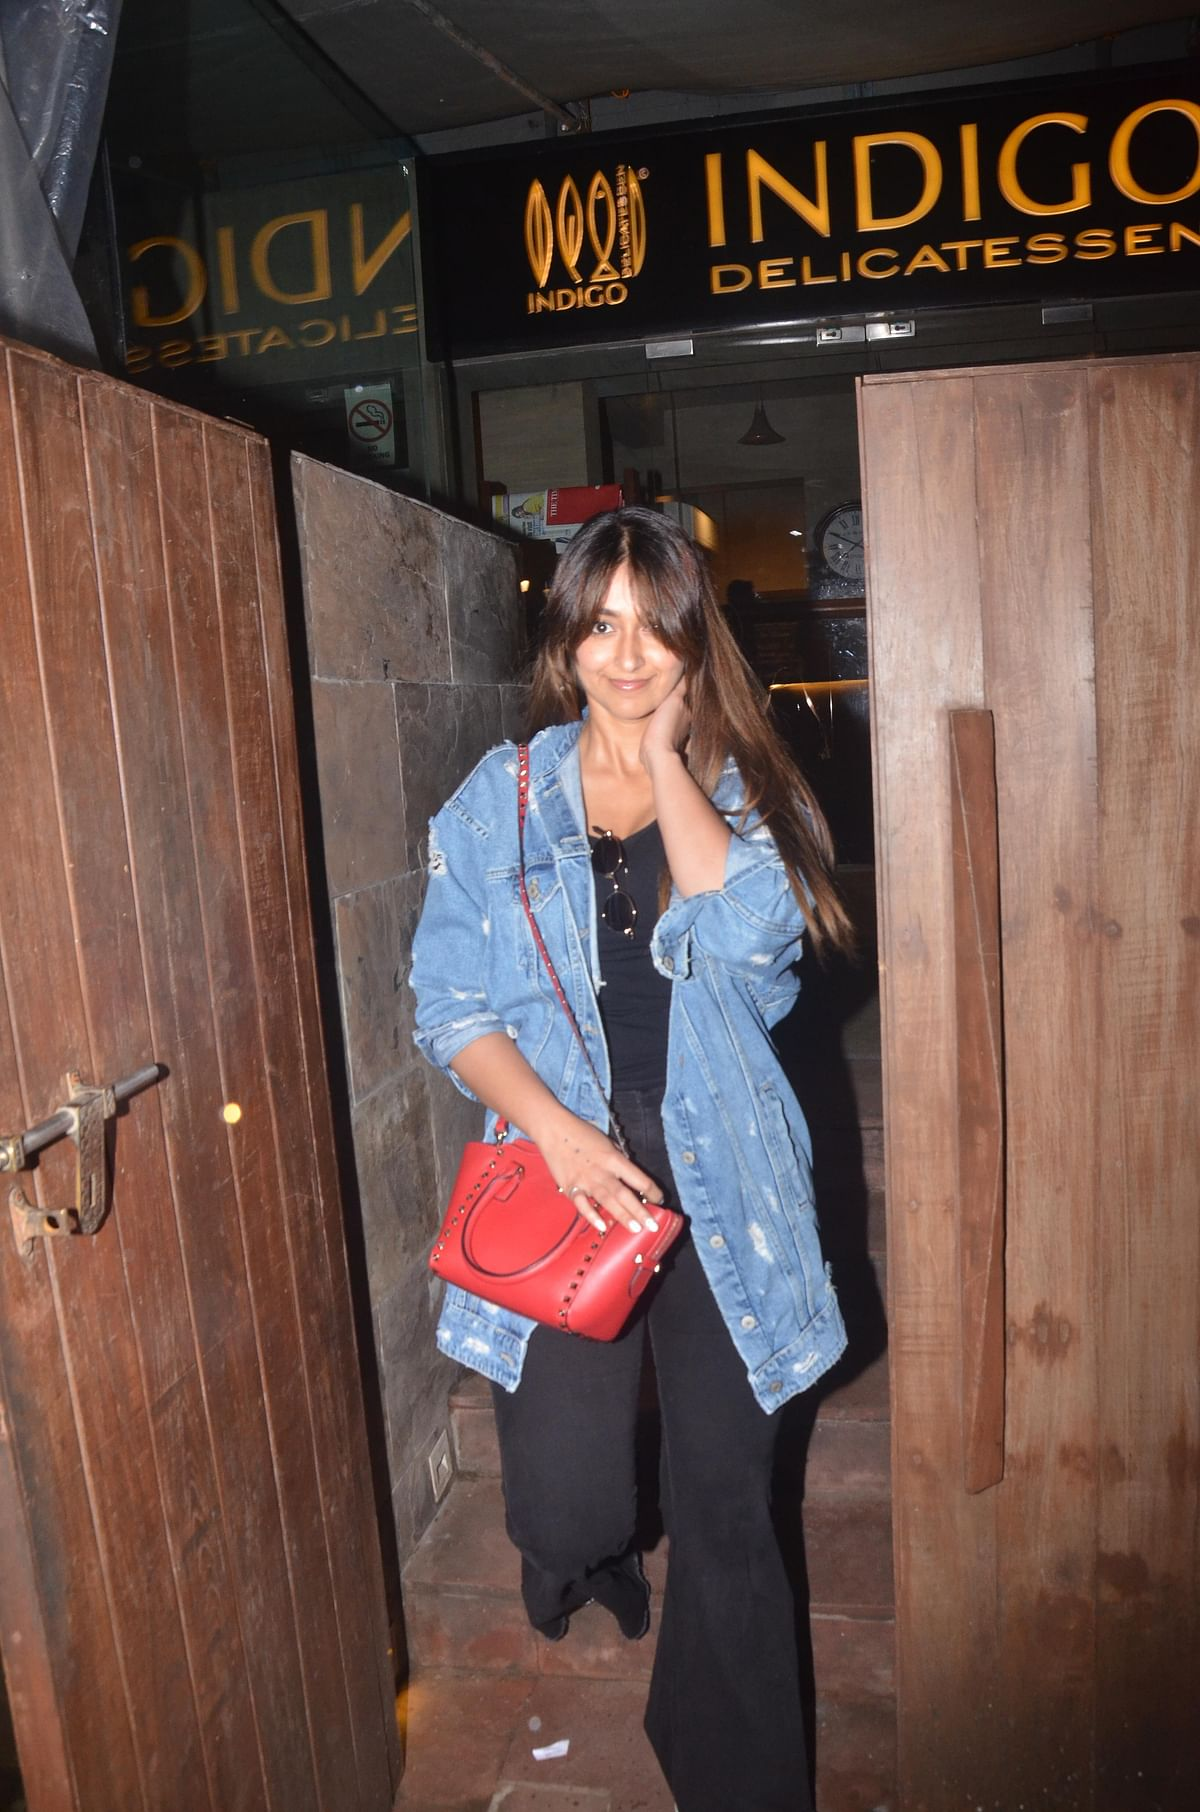 'Raid' actress Ileana D'cruz was clicked by paps at Indigo in Bandra.